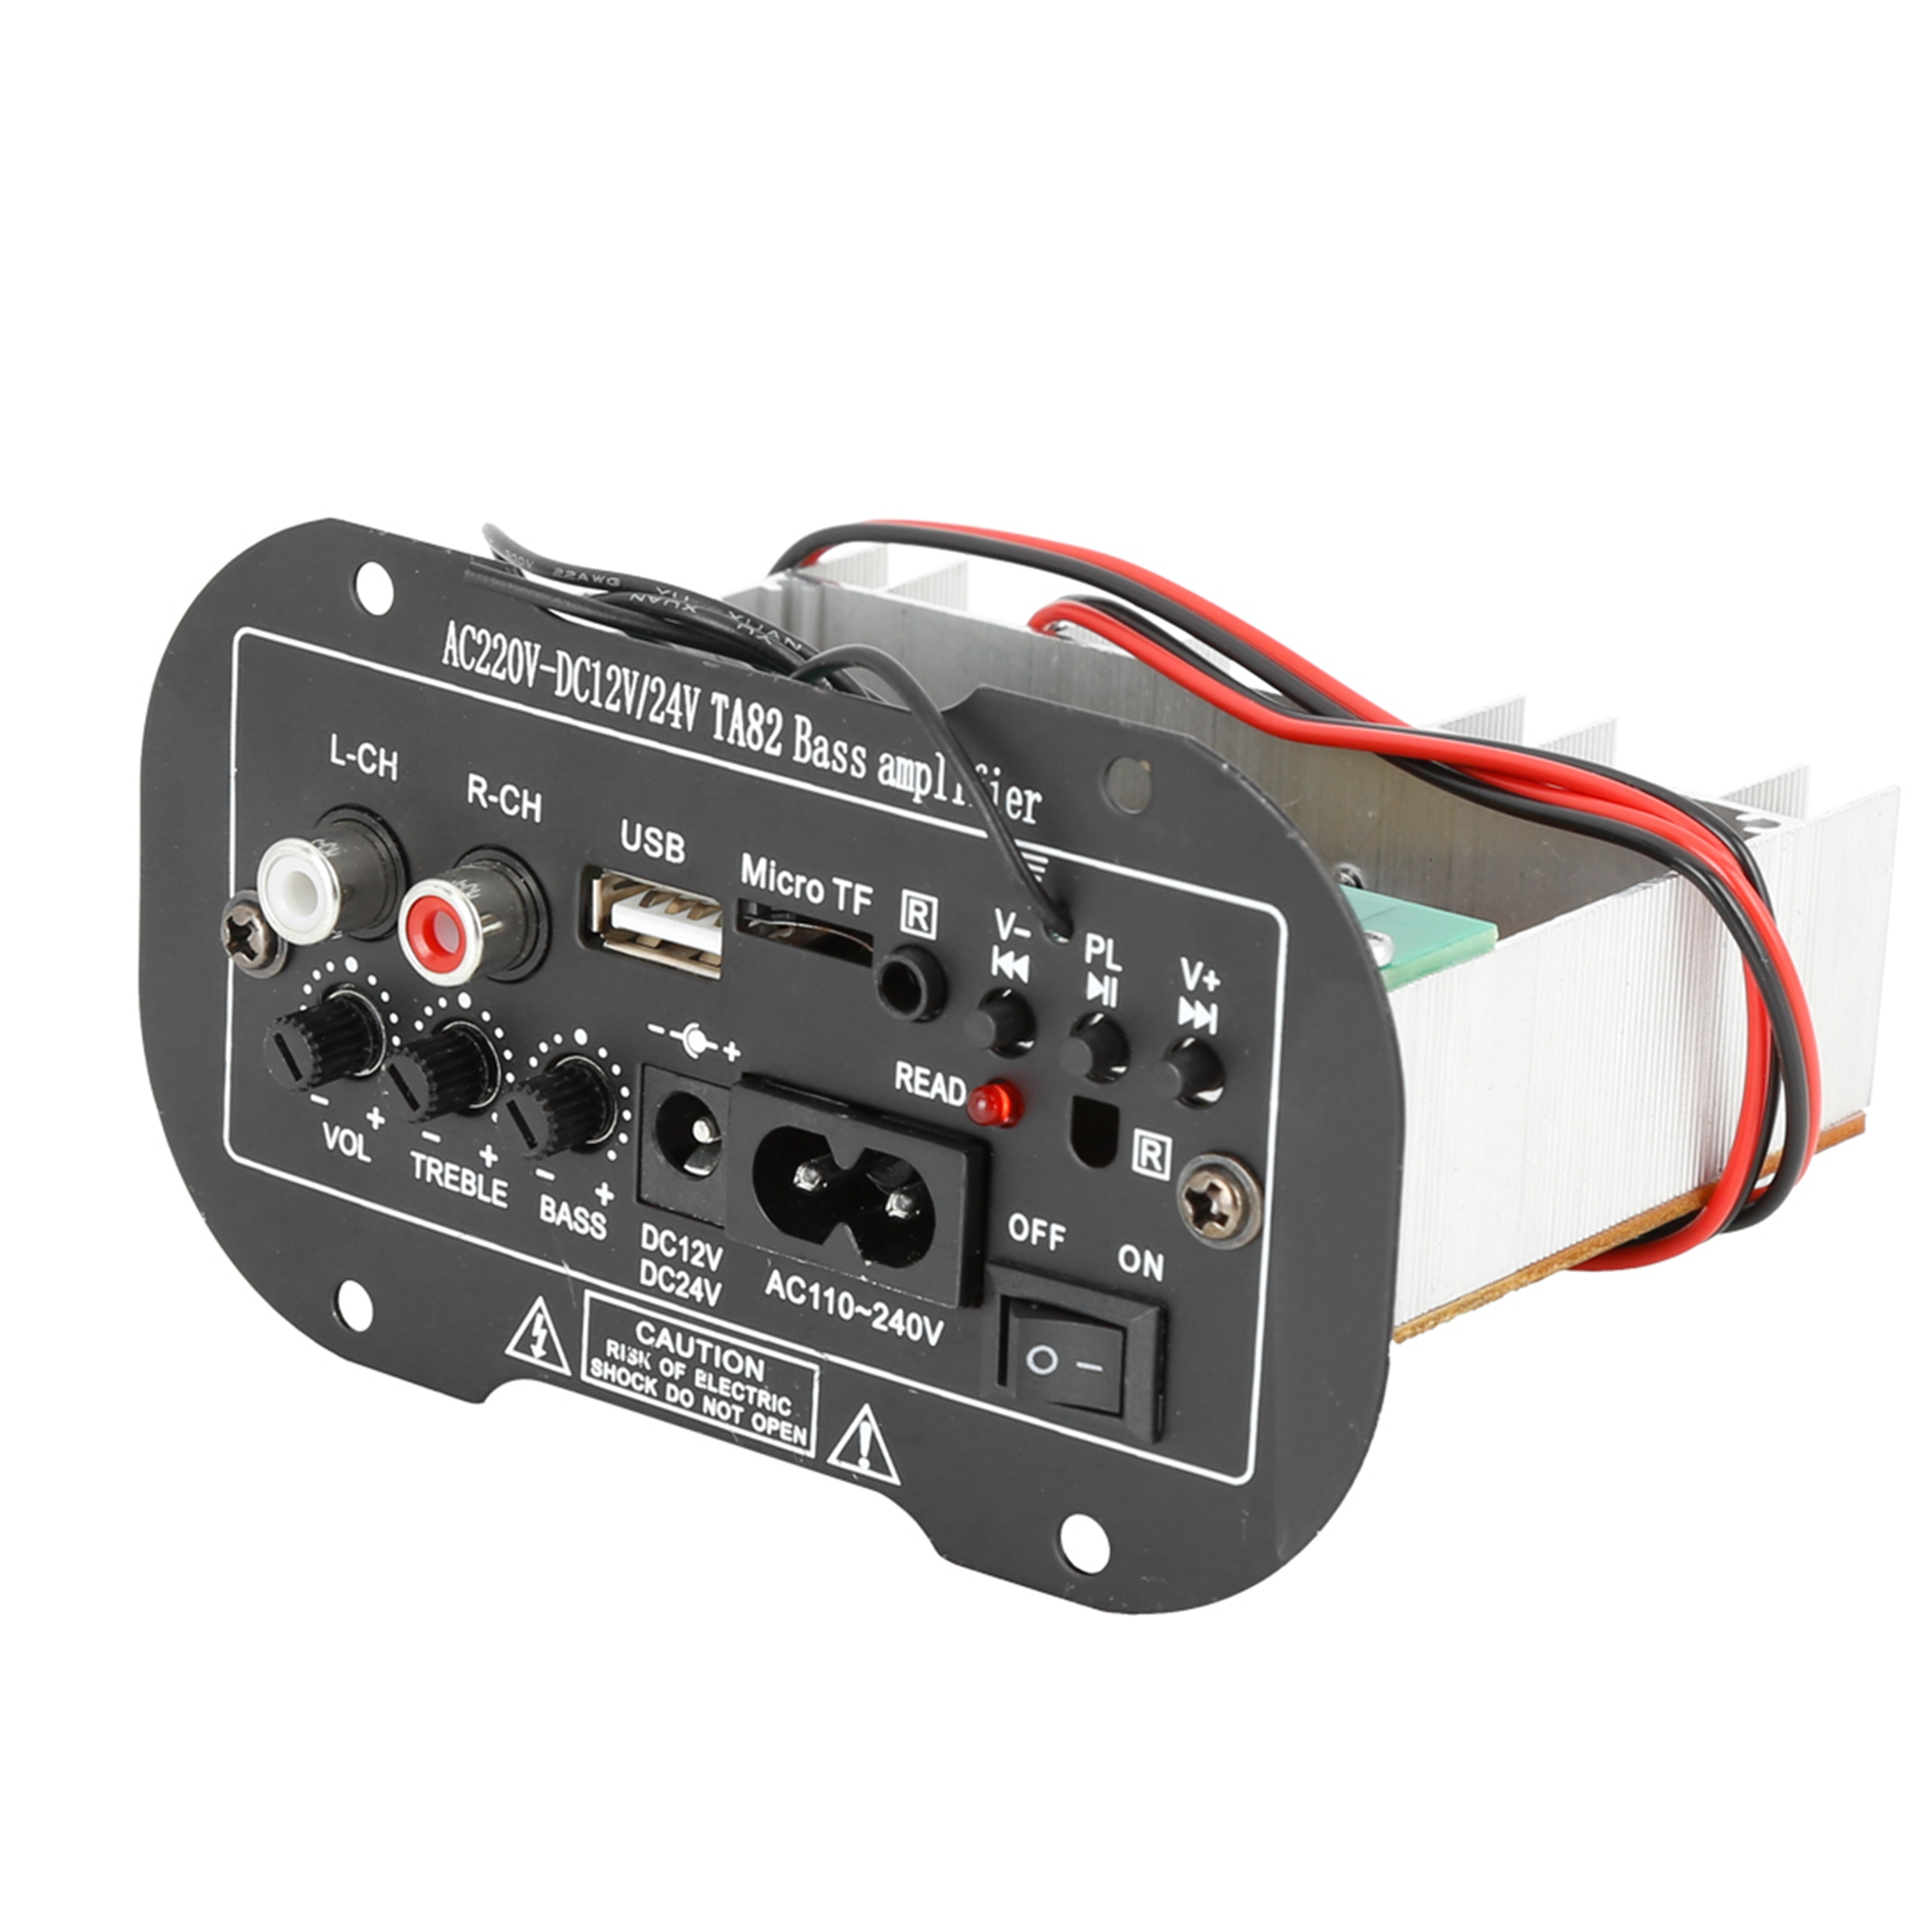 DC 12V 24V 35W Hi-Fi Audio Bass Subwoofer Stereo Power Amplifier Board for Auto Car